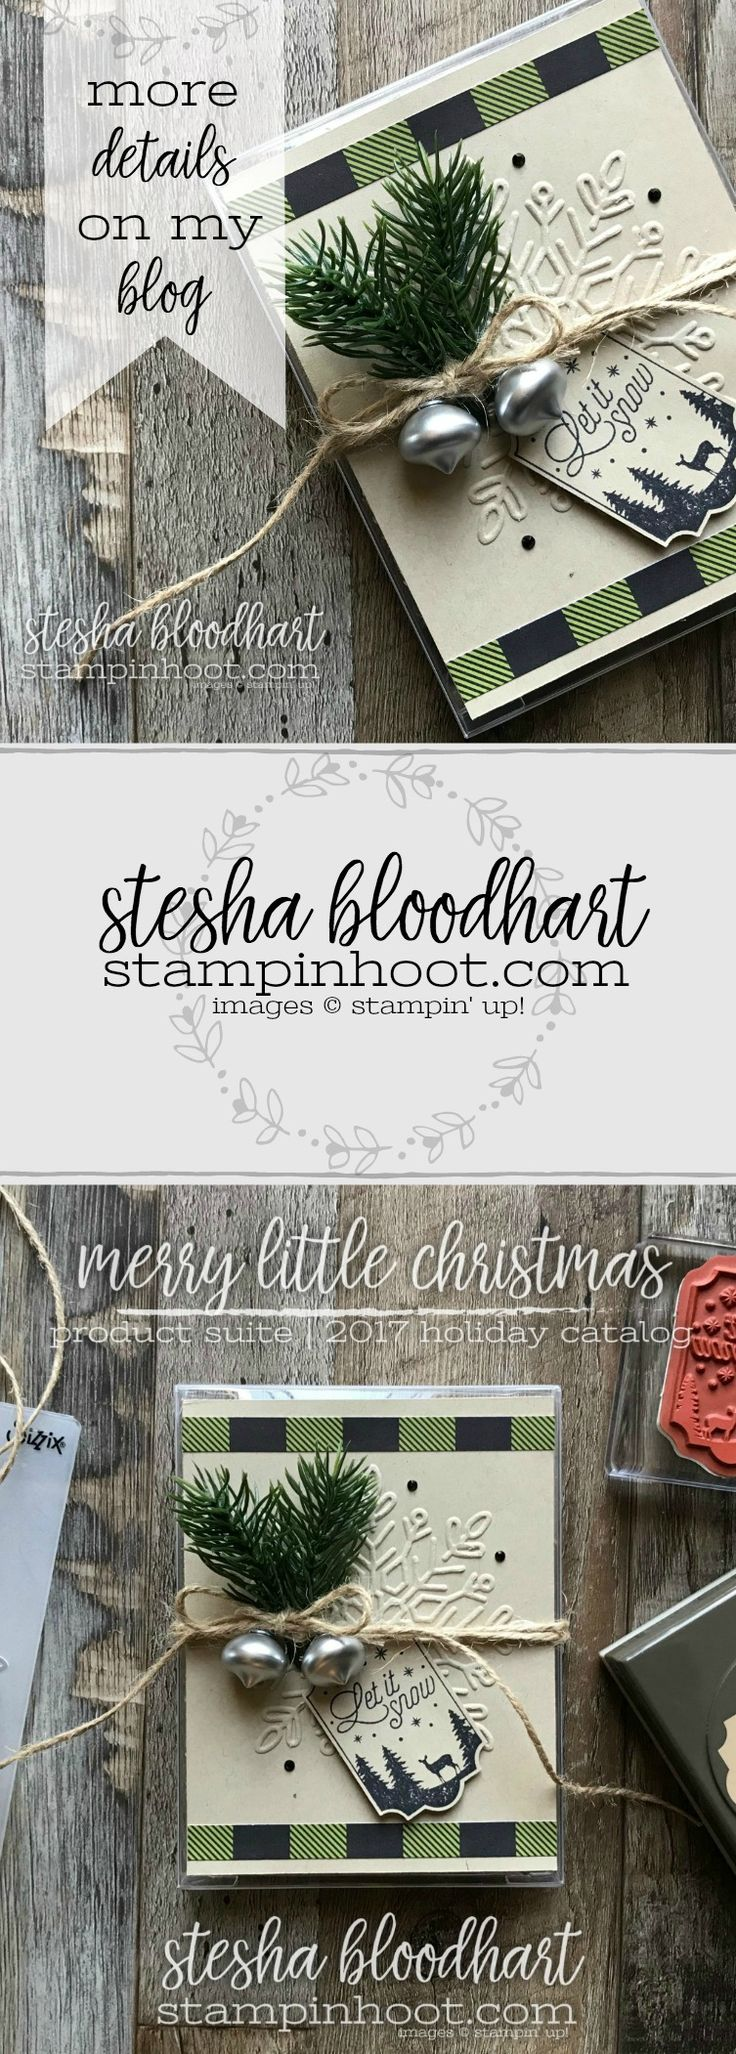 Merry Little Christmas Suite, Merry Little Labels Bundle and Acetate Boxes for a Cute Gift Box by Stesha Bloodhart, Stampin' Hoot! for Just Add Ink #389 #stampinhoot #steshabloodhart